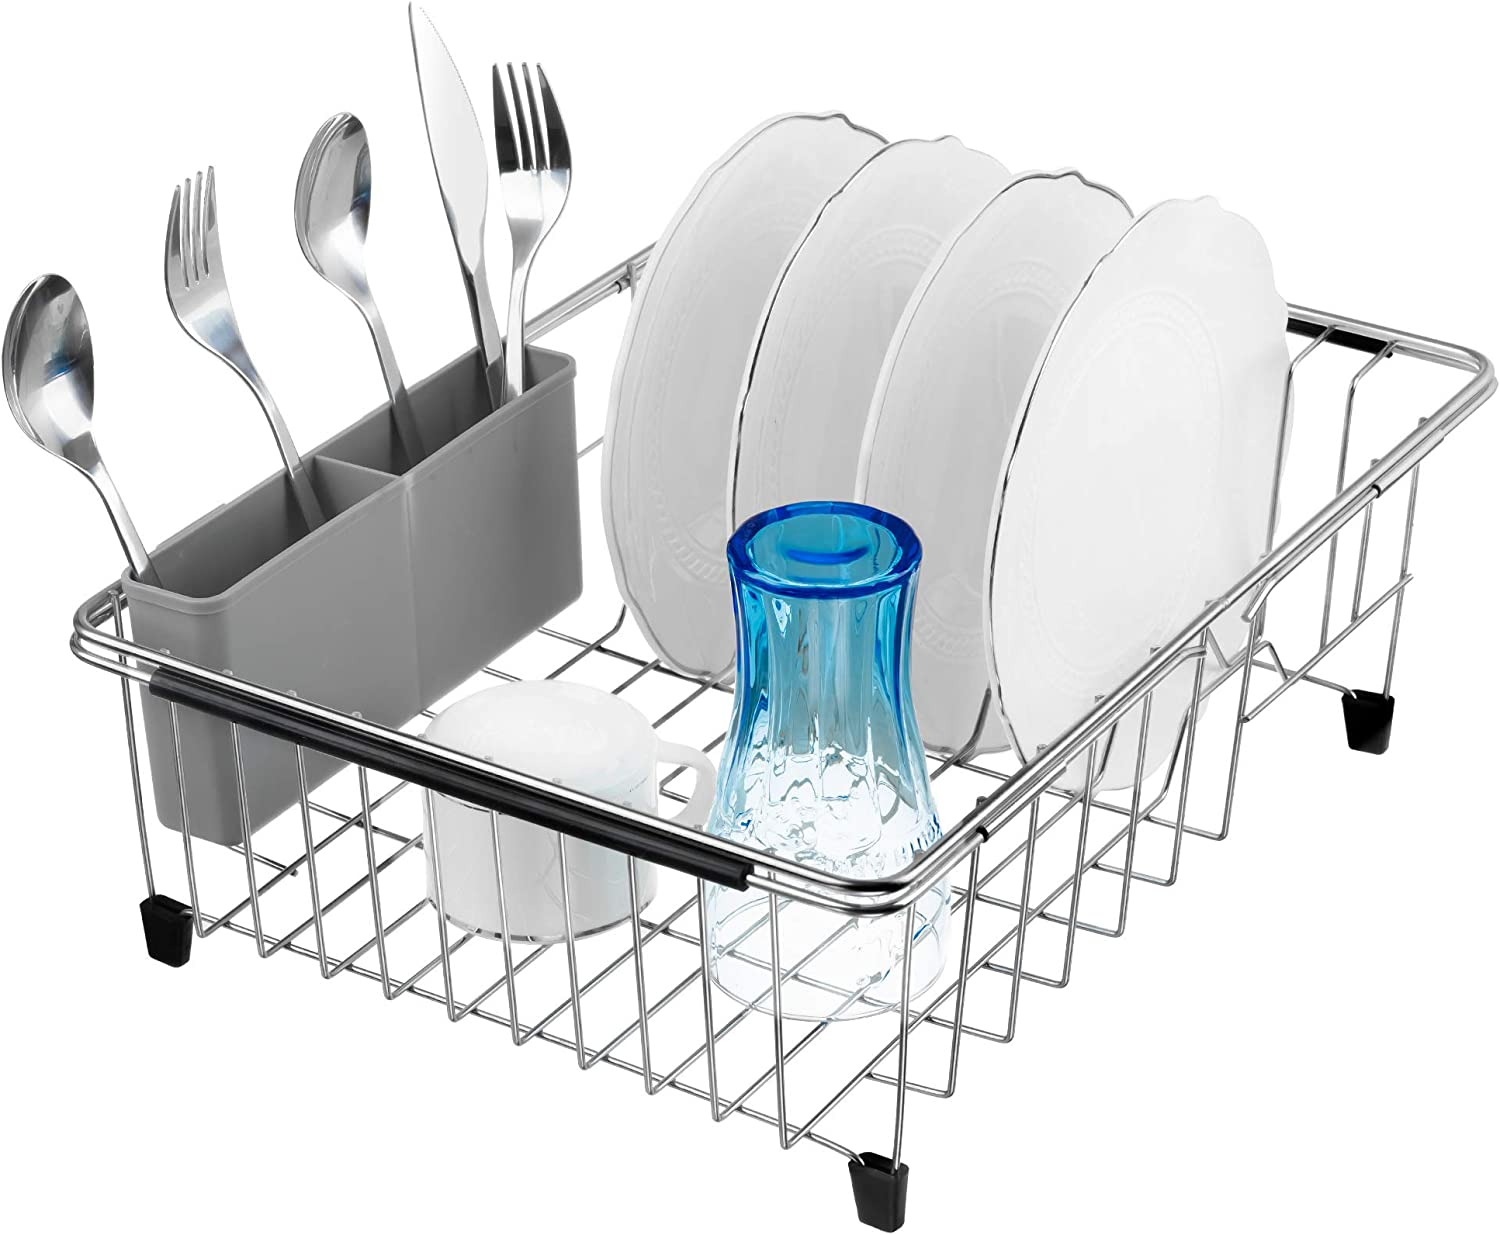 Slideep Expandable Dish Drying Rack, 304 Stainless Steel Over the Sink Dish Rack, in Sink or On Counter Dish Drainer with removable Utensil Holder Grey